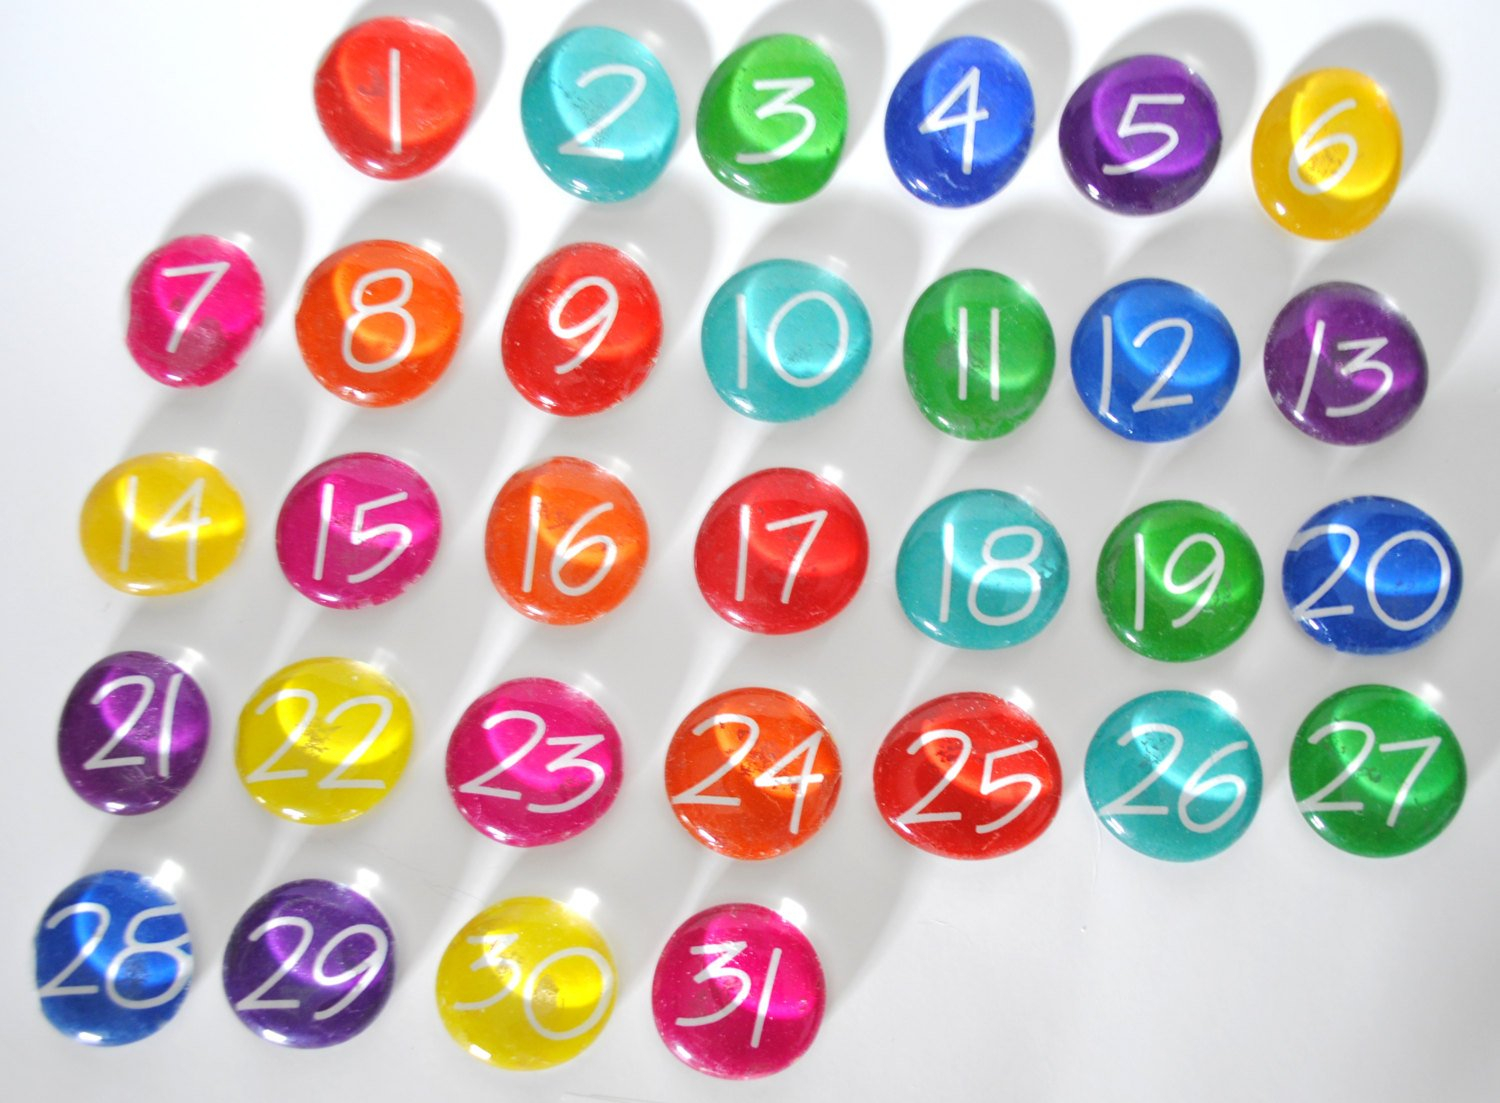 Large 31 Number Magnets Or Push Pin Calendar Set 2018 Numbers For Calendars 1-31 Toddlers